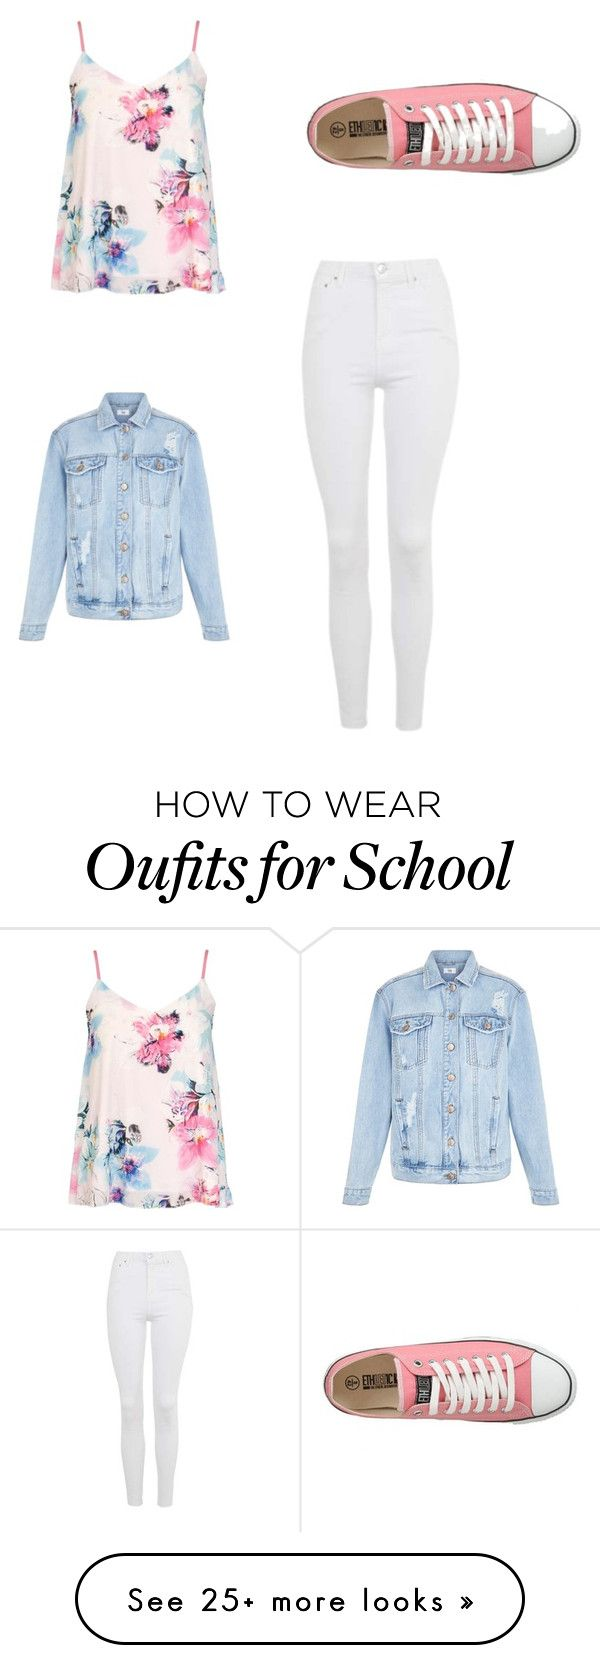 "Back To School : Outfit Ideas"" by kyliemadi11 on Polyvore"